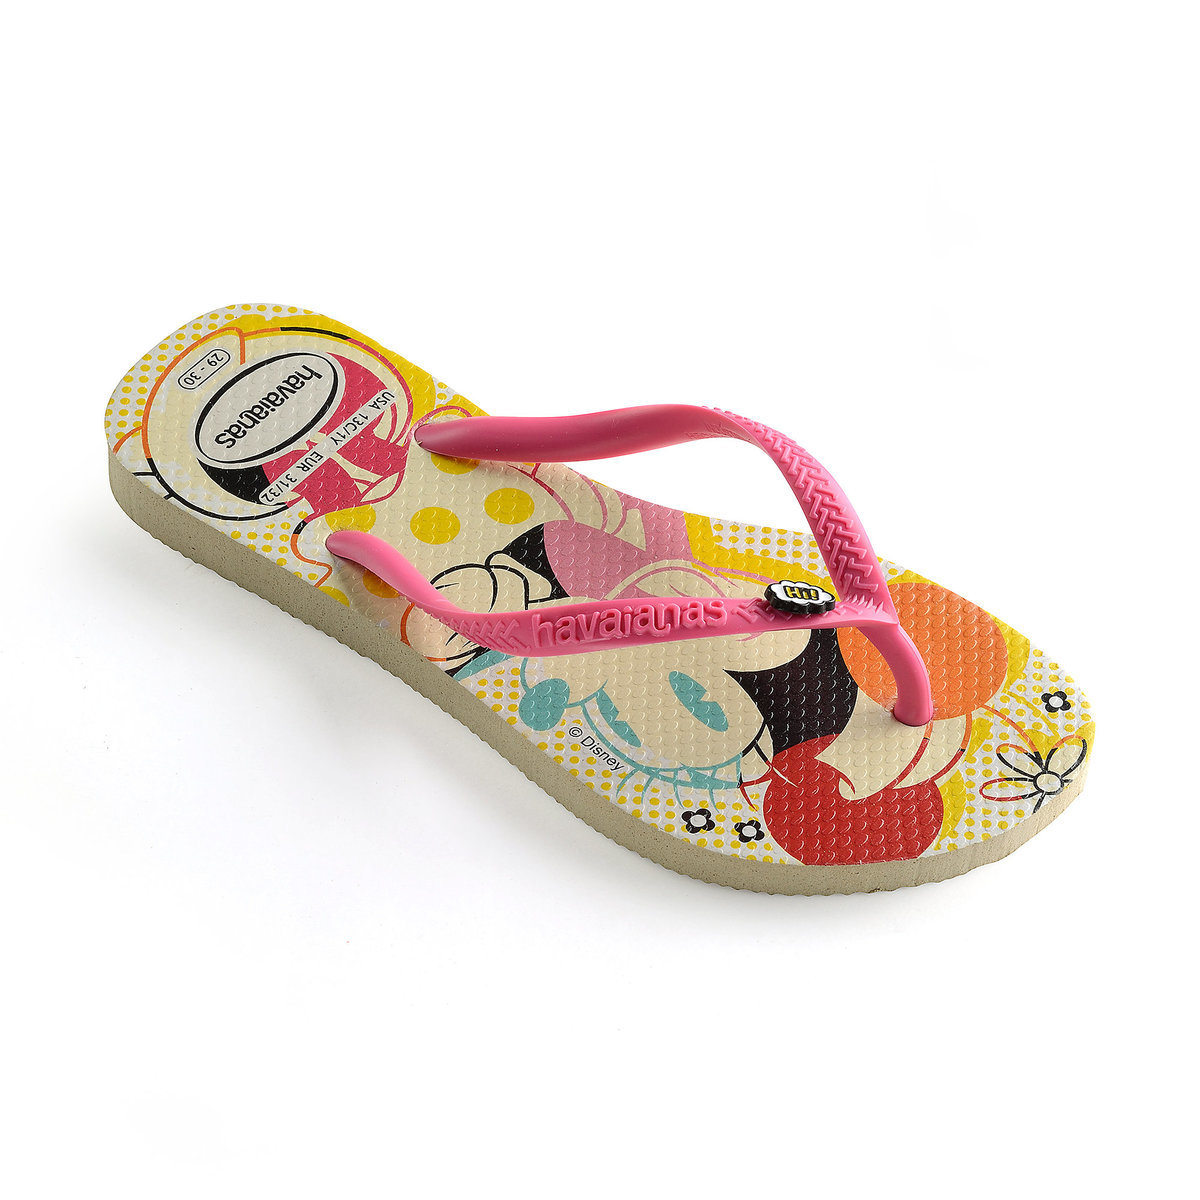 563cc4e02 Product Image of Minnie Mouse Flip Flops for Kids by Havaianas   1